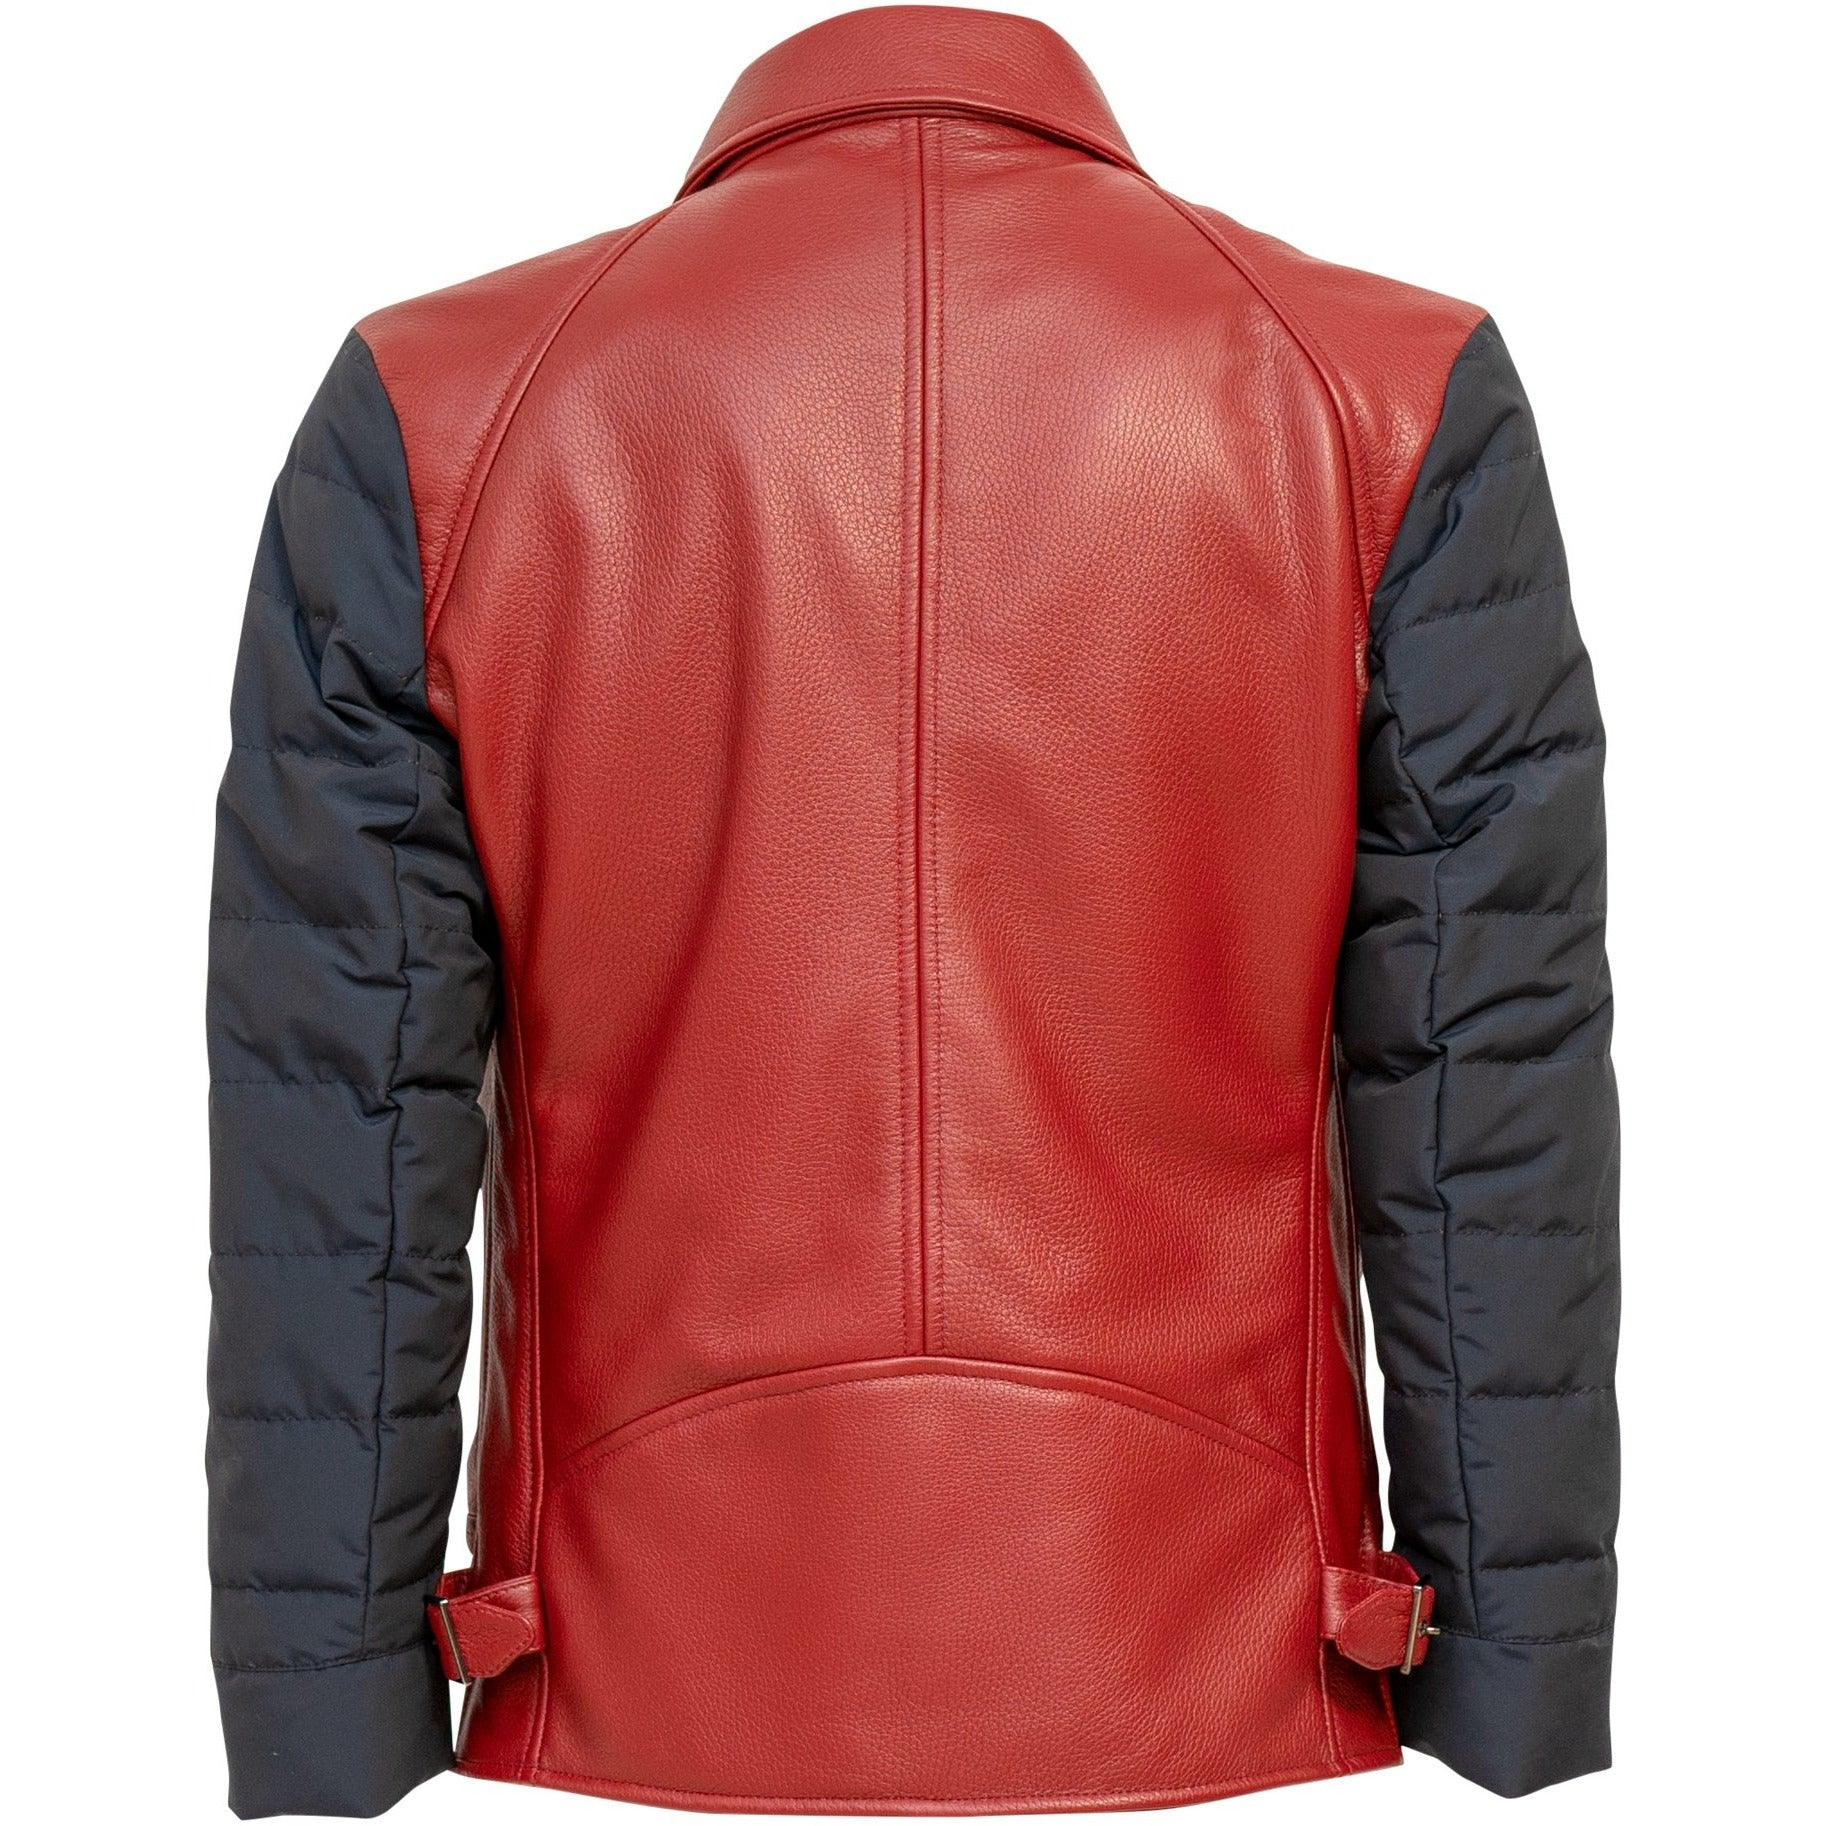 PRG001M Men Leather Jacket - New Fall Winter 2019-2020 Collection